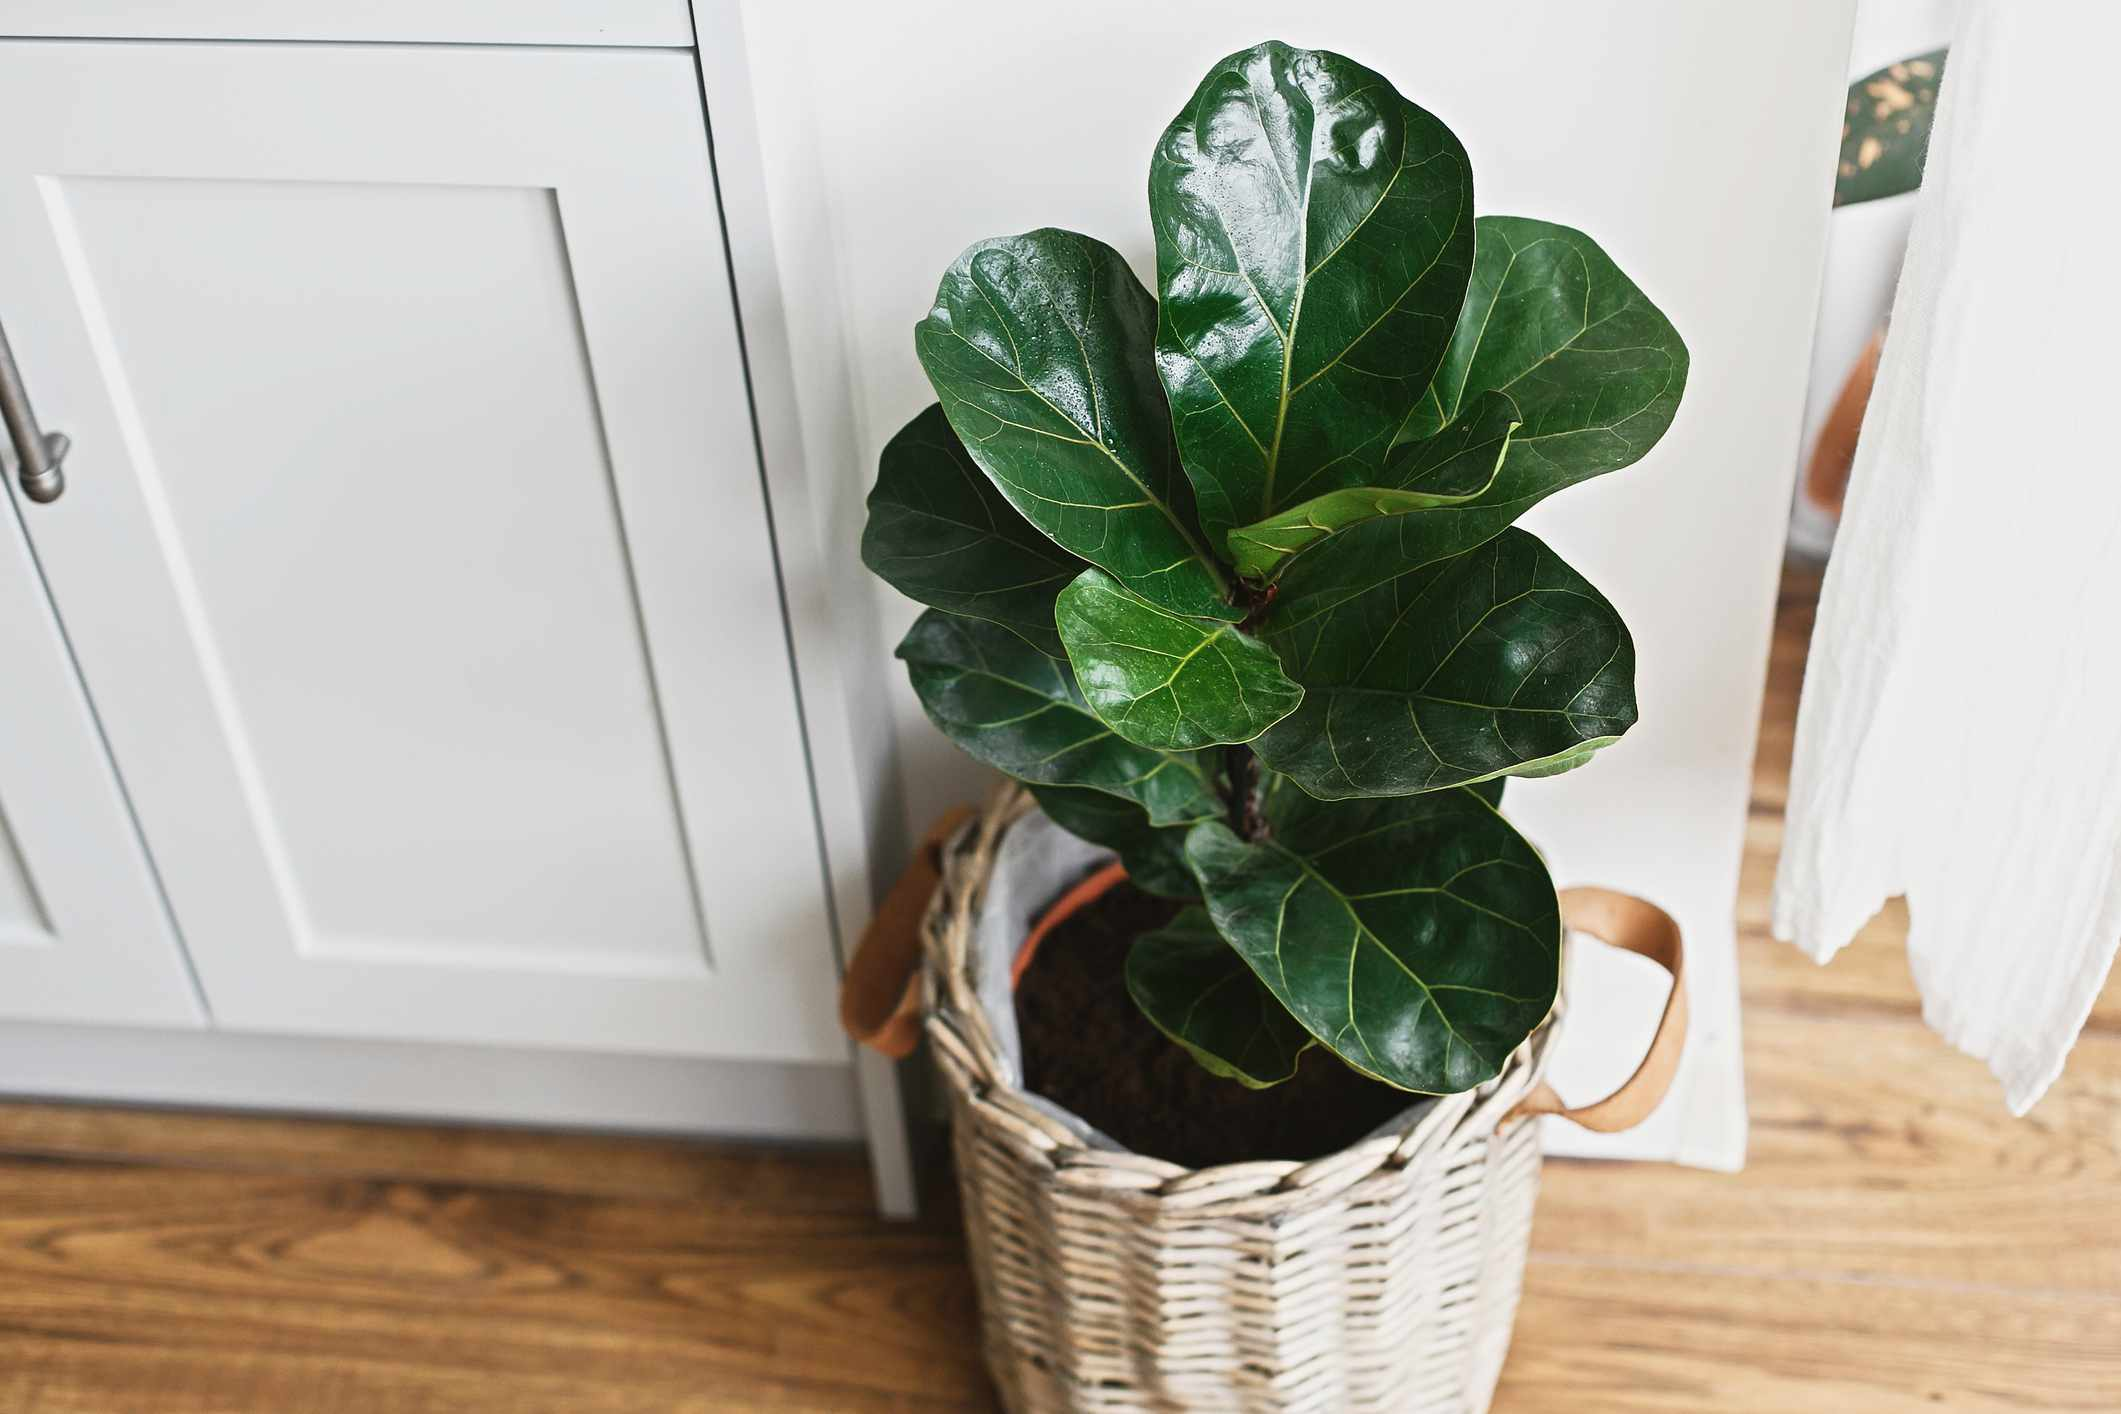 Big fiddle leaf fig tree in stylish modern pot near kitchen furniture. Ficus lyrata leaves, stylish plant on wooden floor in kitchen. Floral decor in modern home